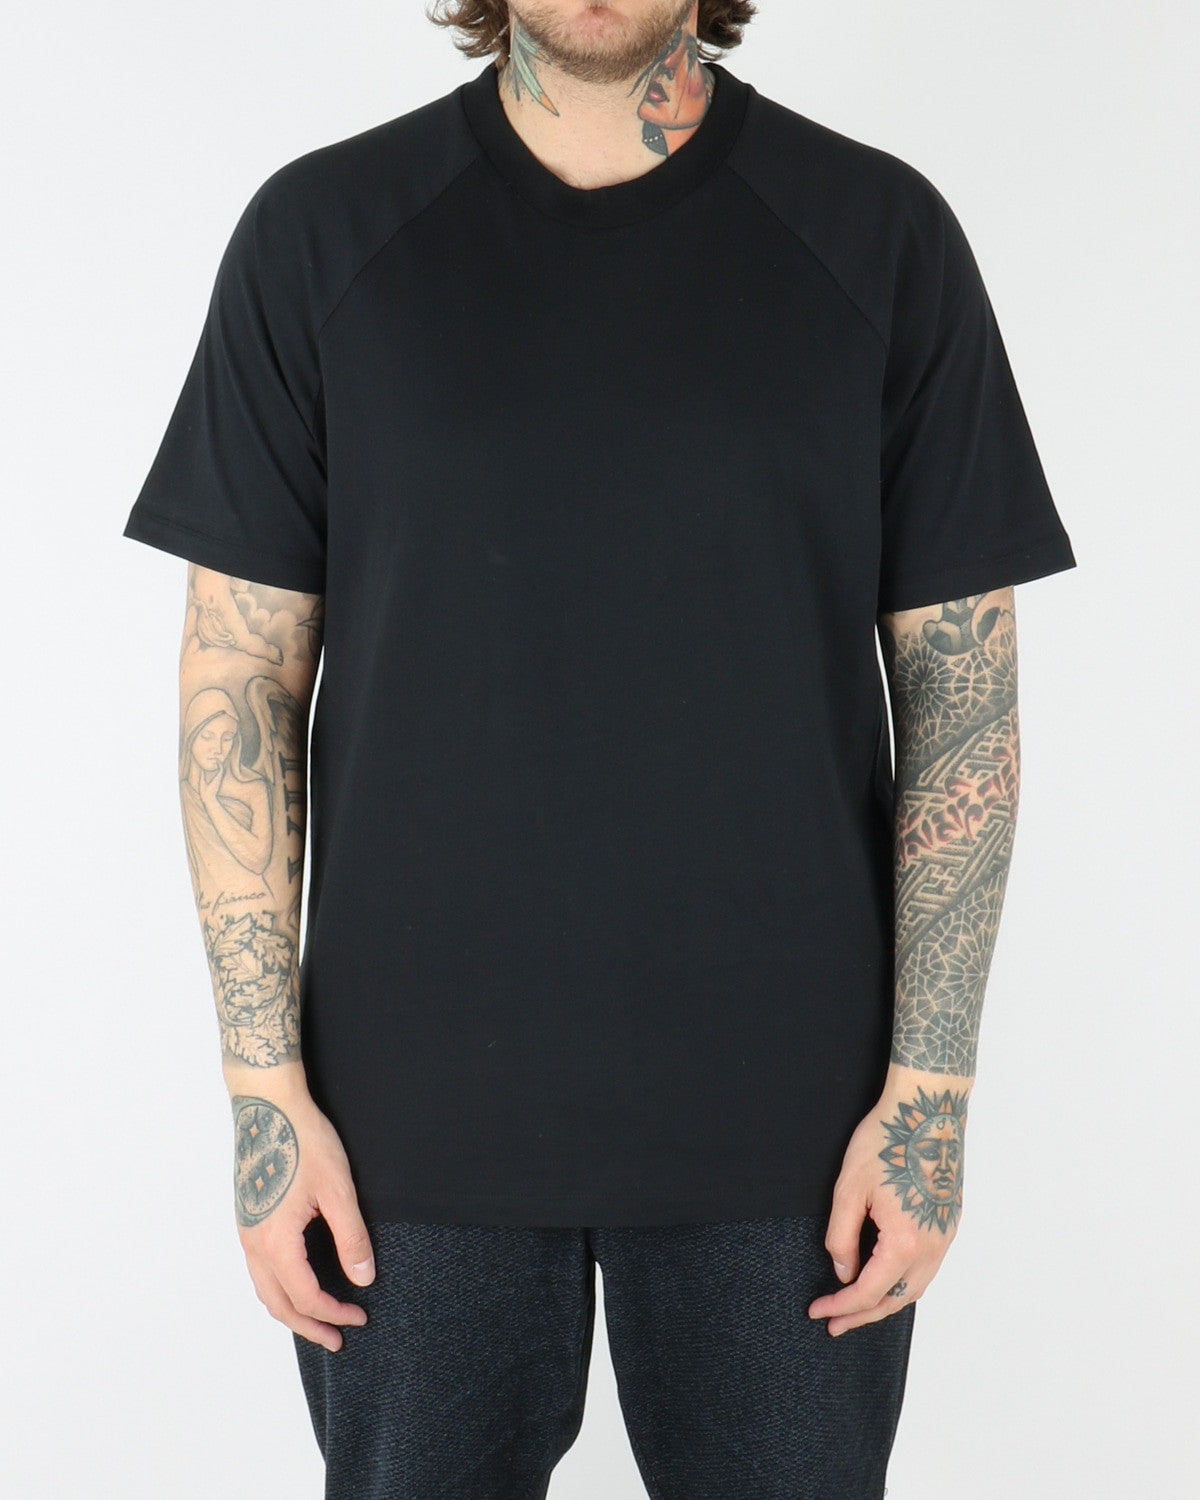 journal clothing_tides t-shirt_black_view_2_3